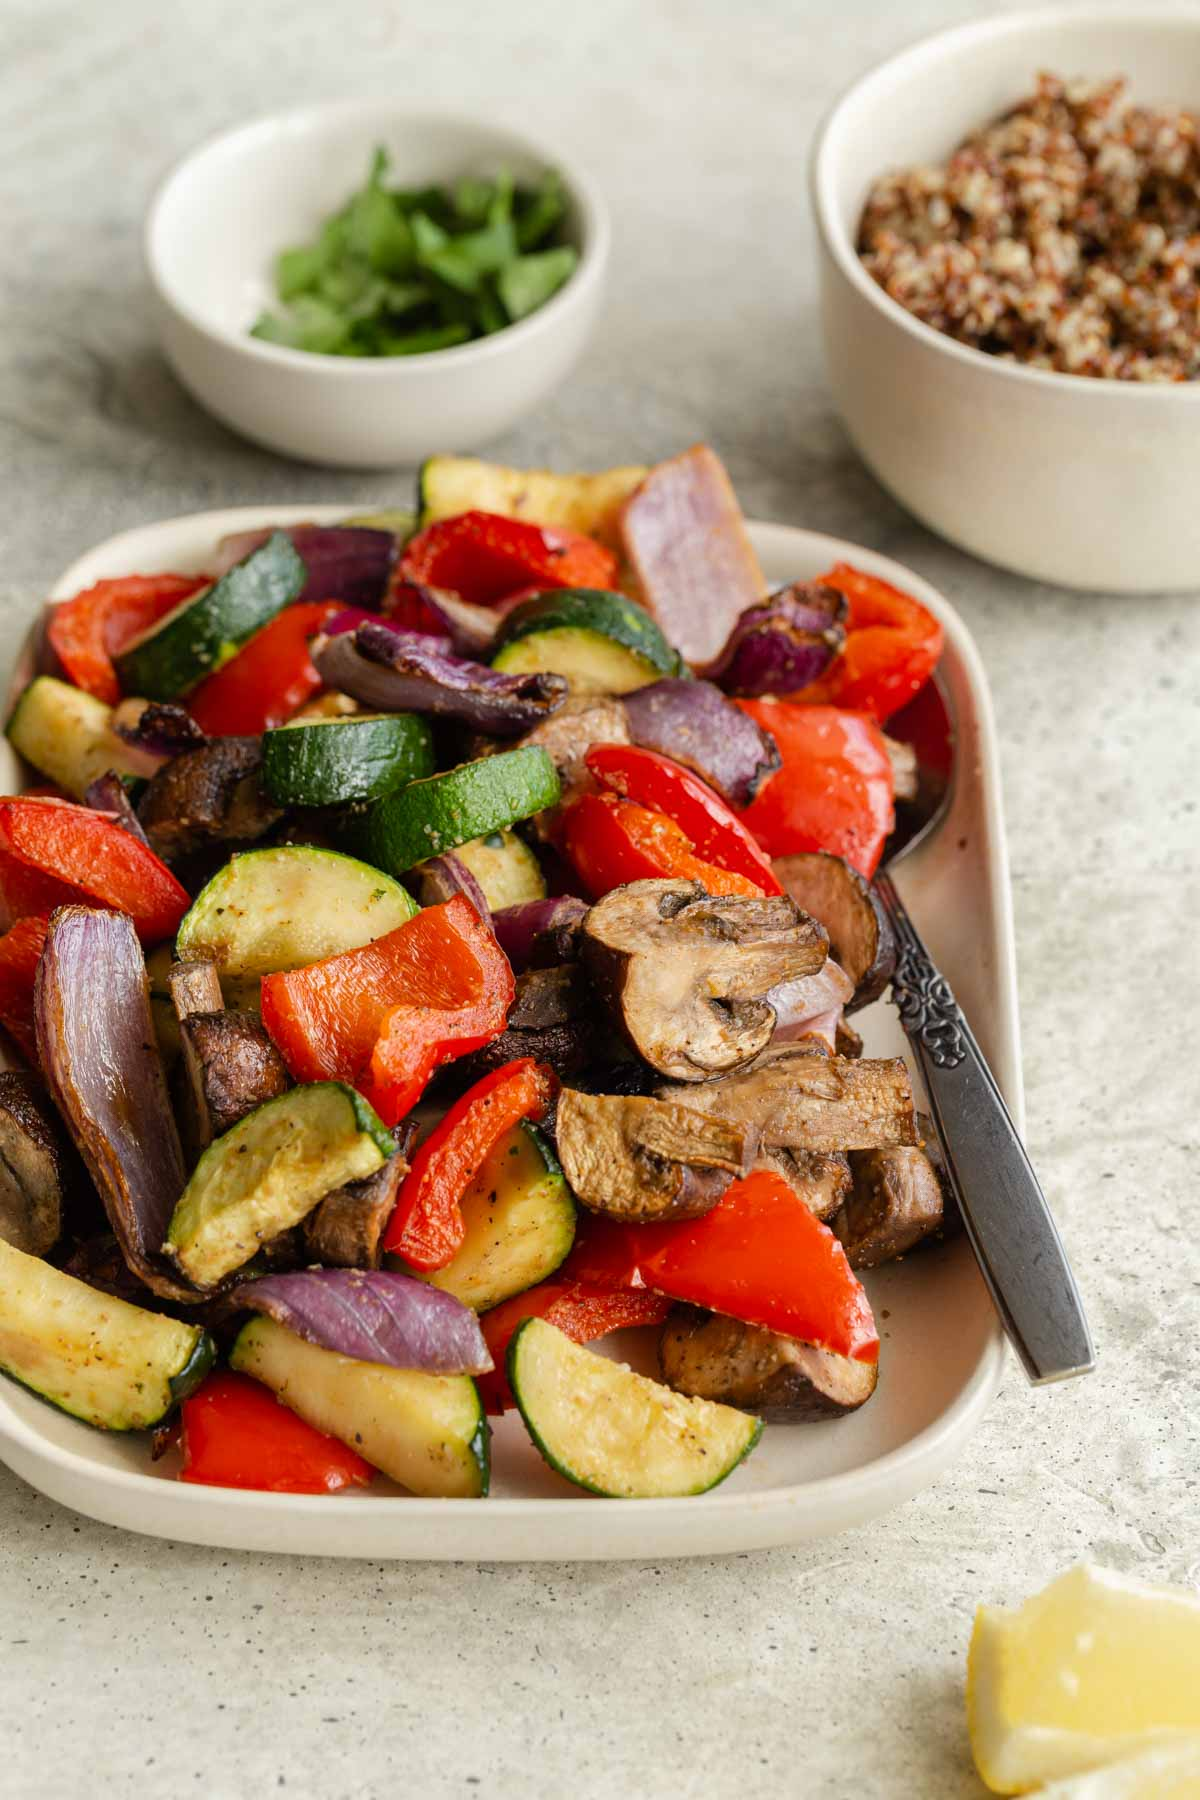 Side view of air fried vegetables on a plate with a spoon with quinoa and parsley in the background.